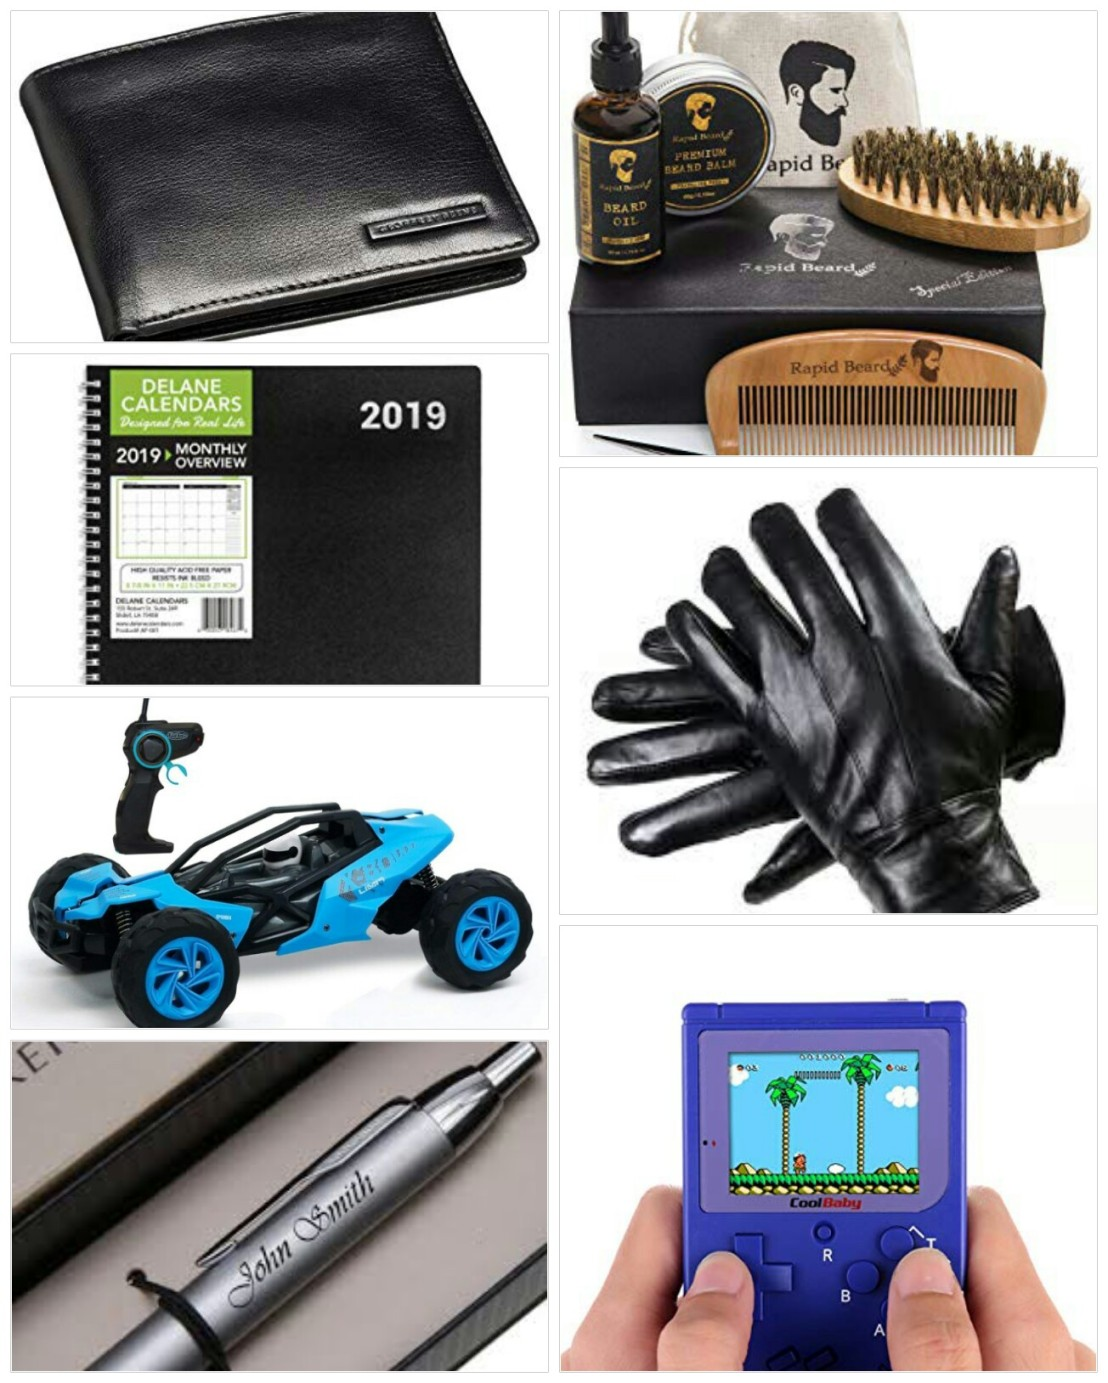 A collage of Christmas gift ideas for him - part 1